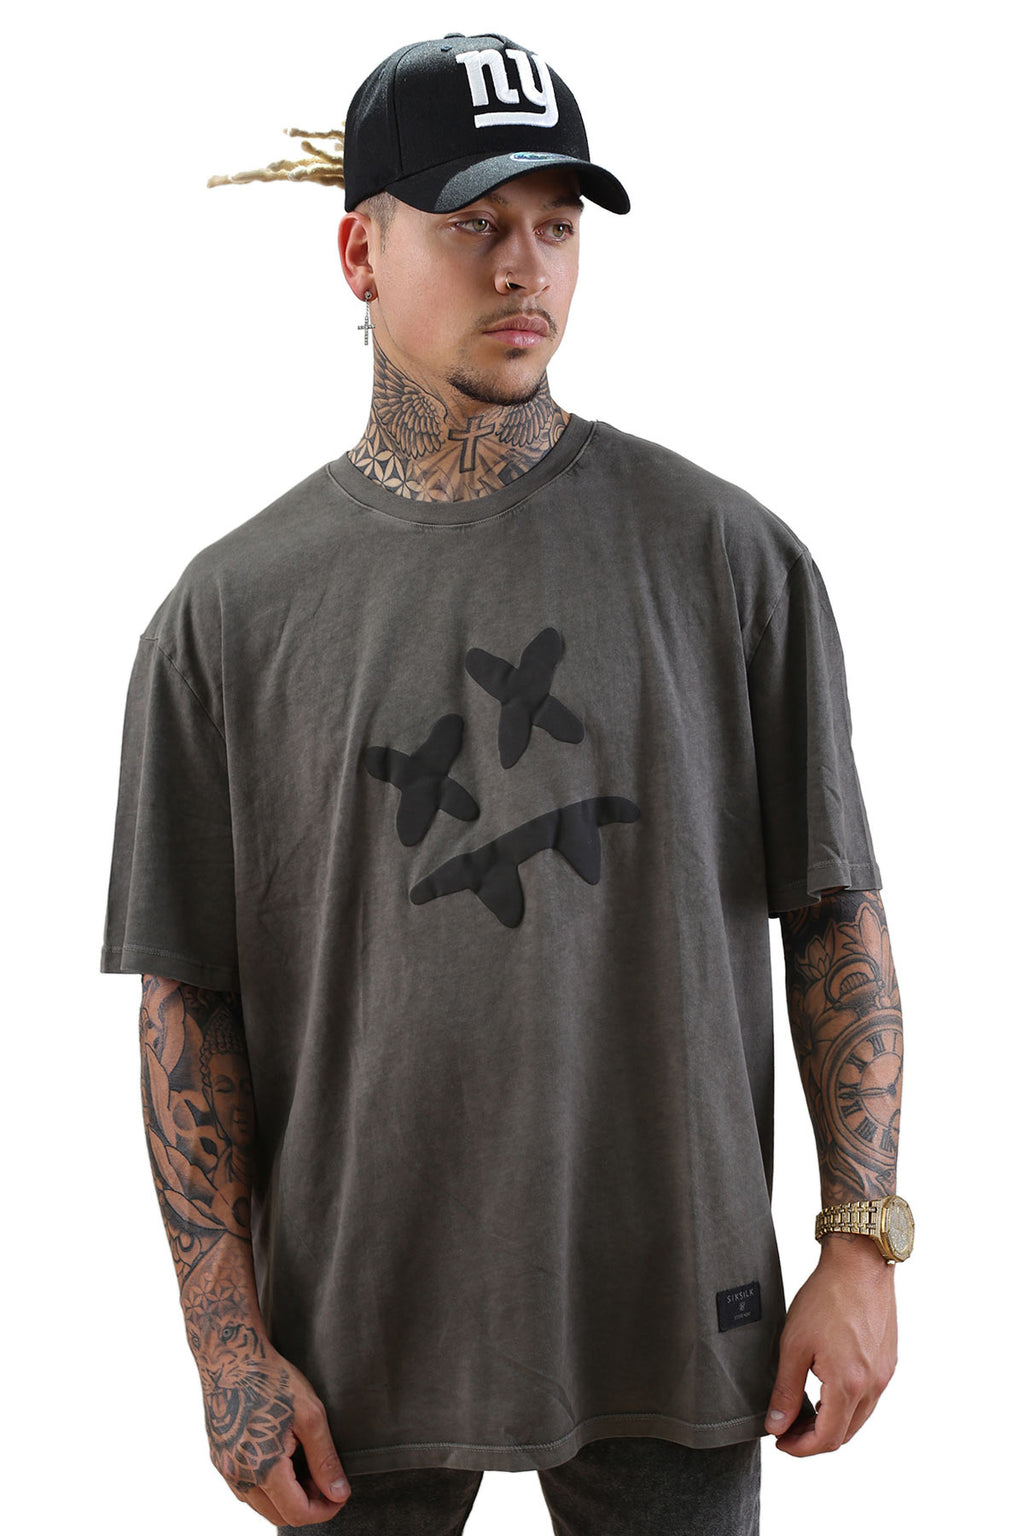 SikSilk X Steve Aoki S/S Essential Tee Wash Grey